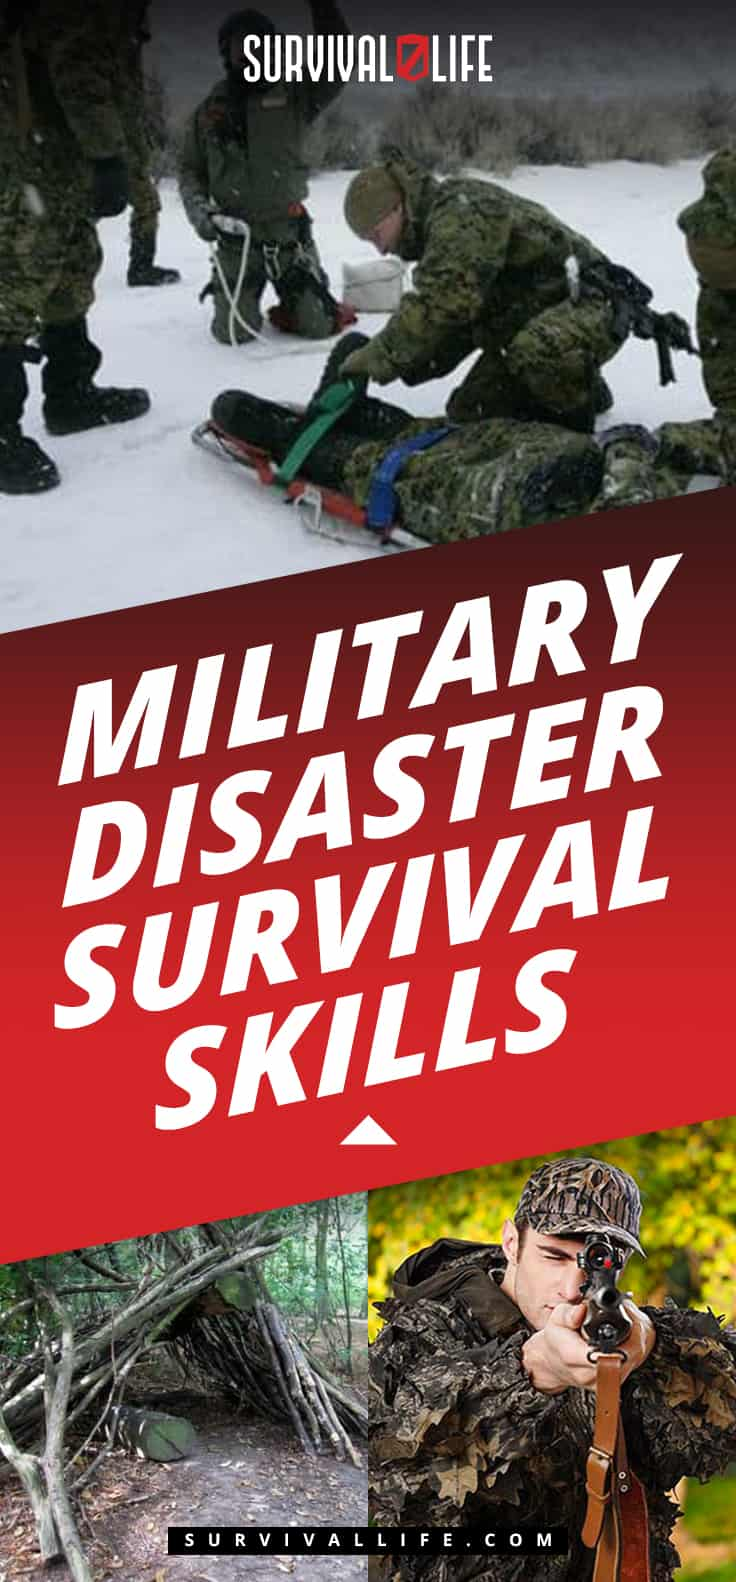 Military Disaster Survival Skills | Survival Life